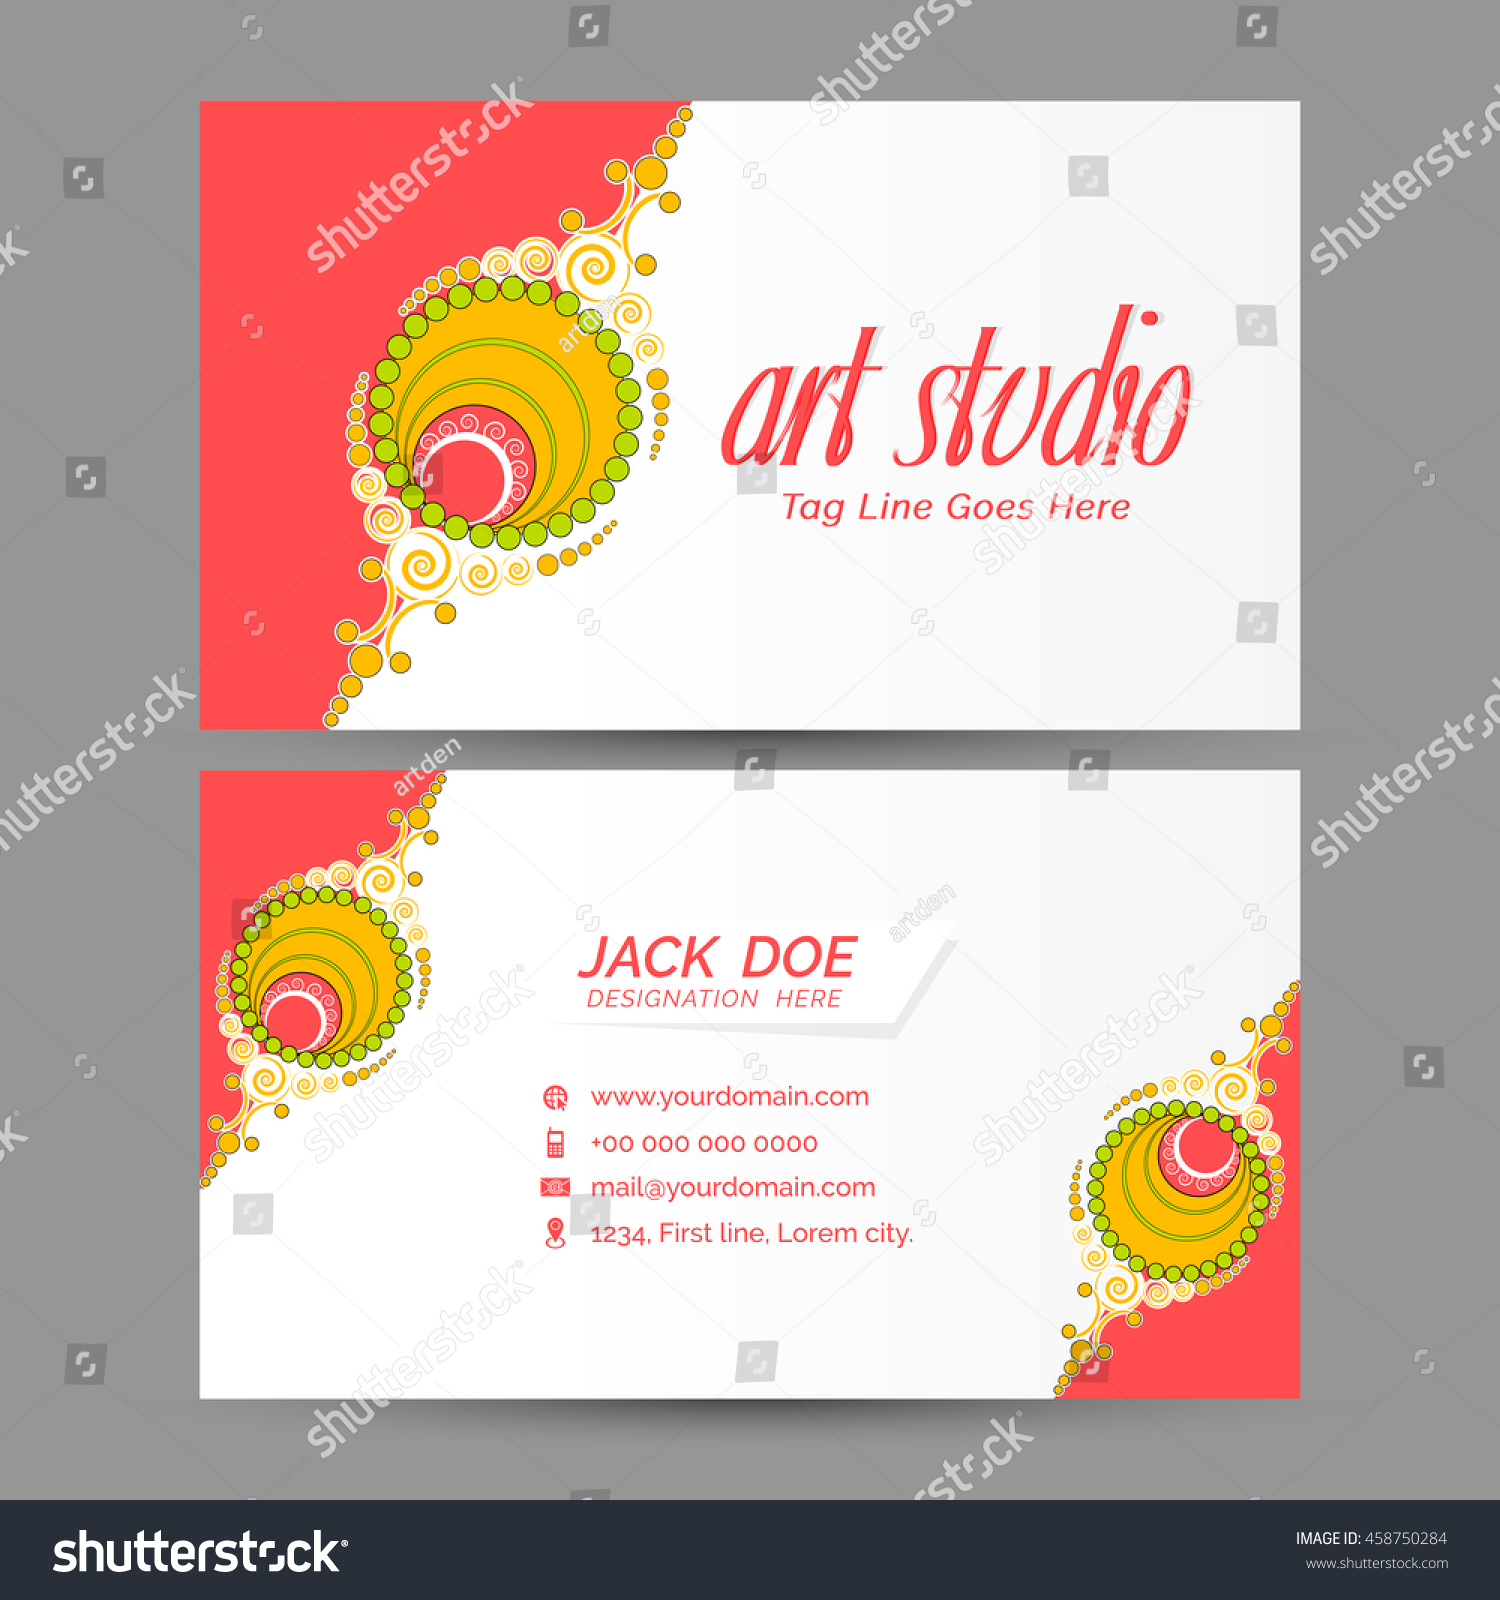 creative vector design templates visiting cards stock vector, Powerpoint templates